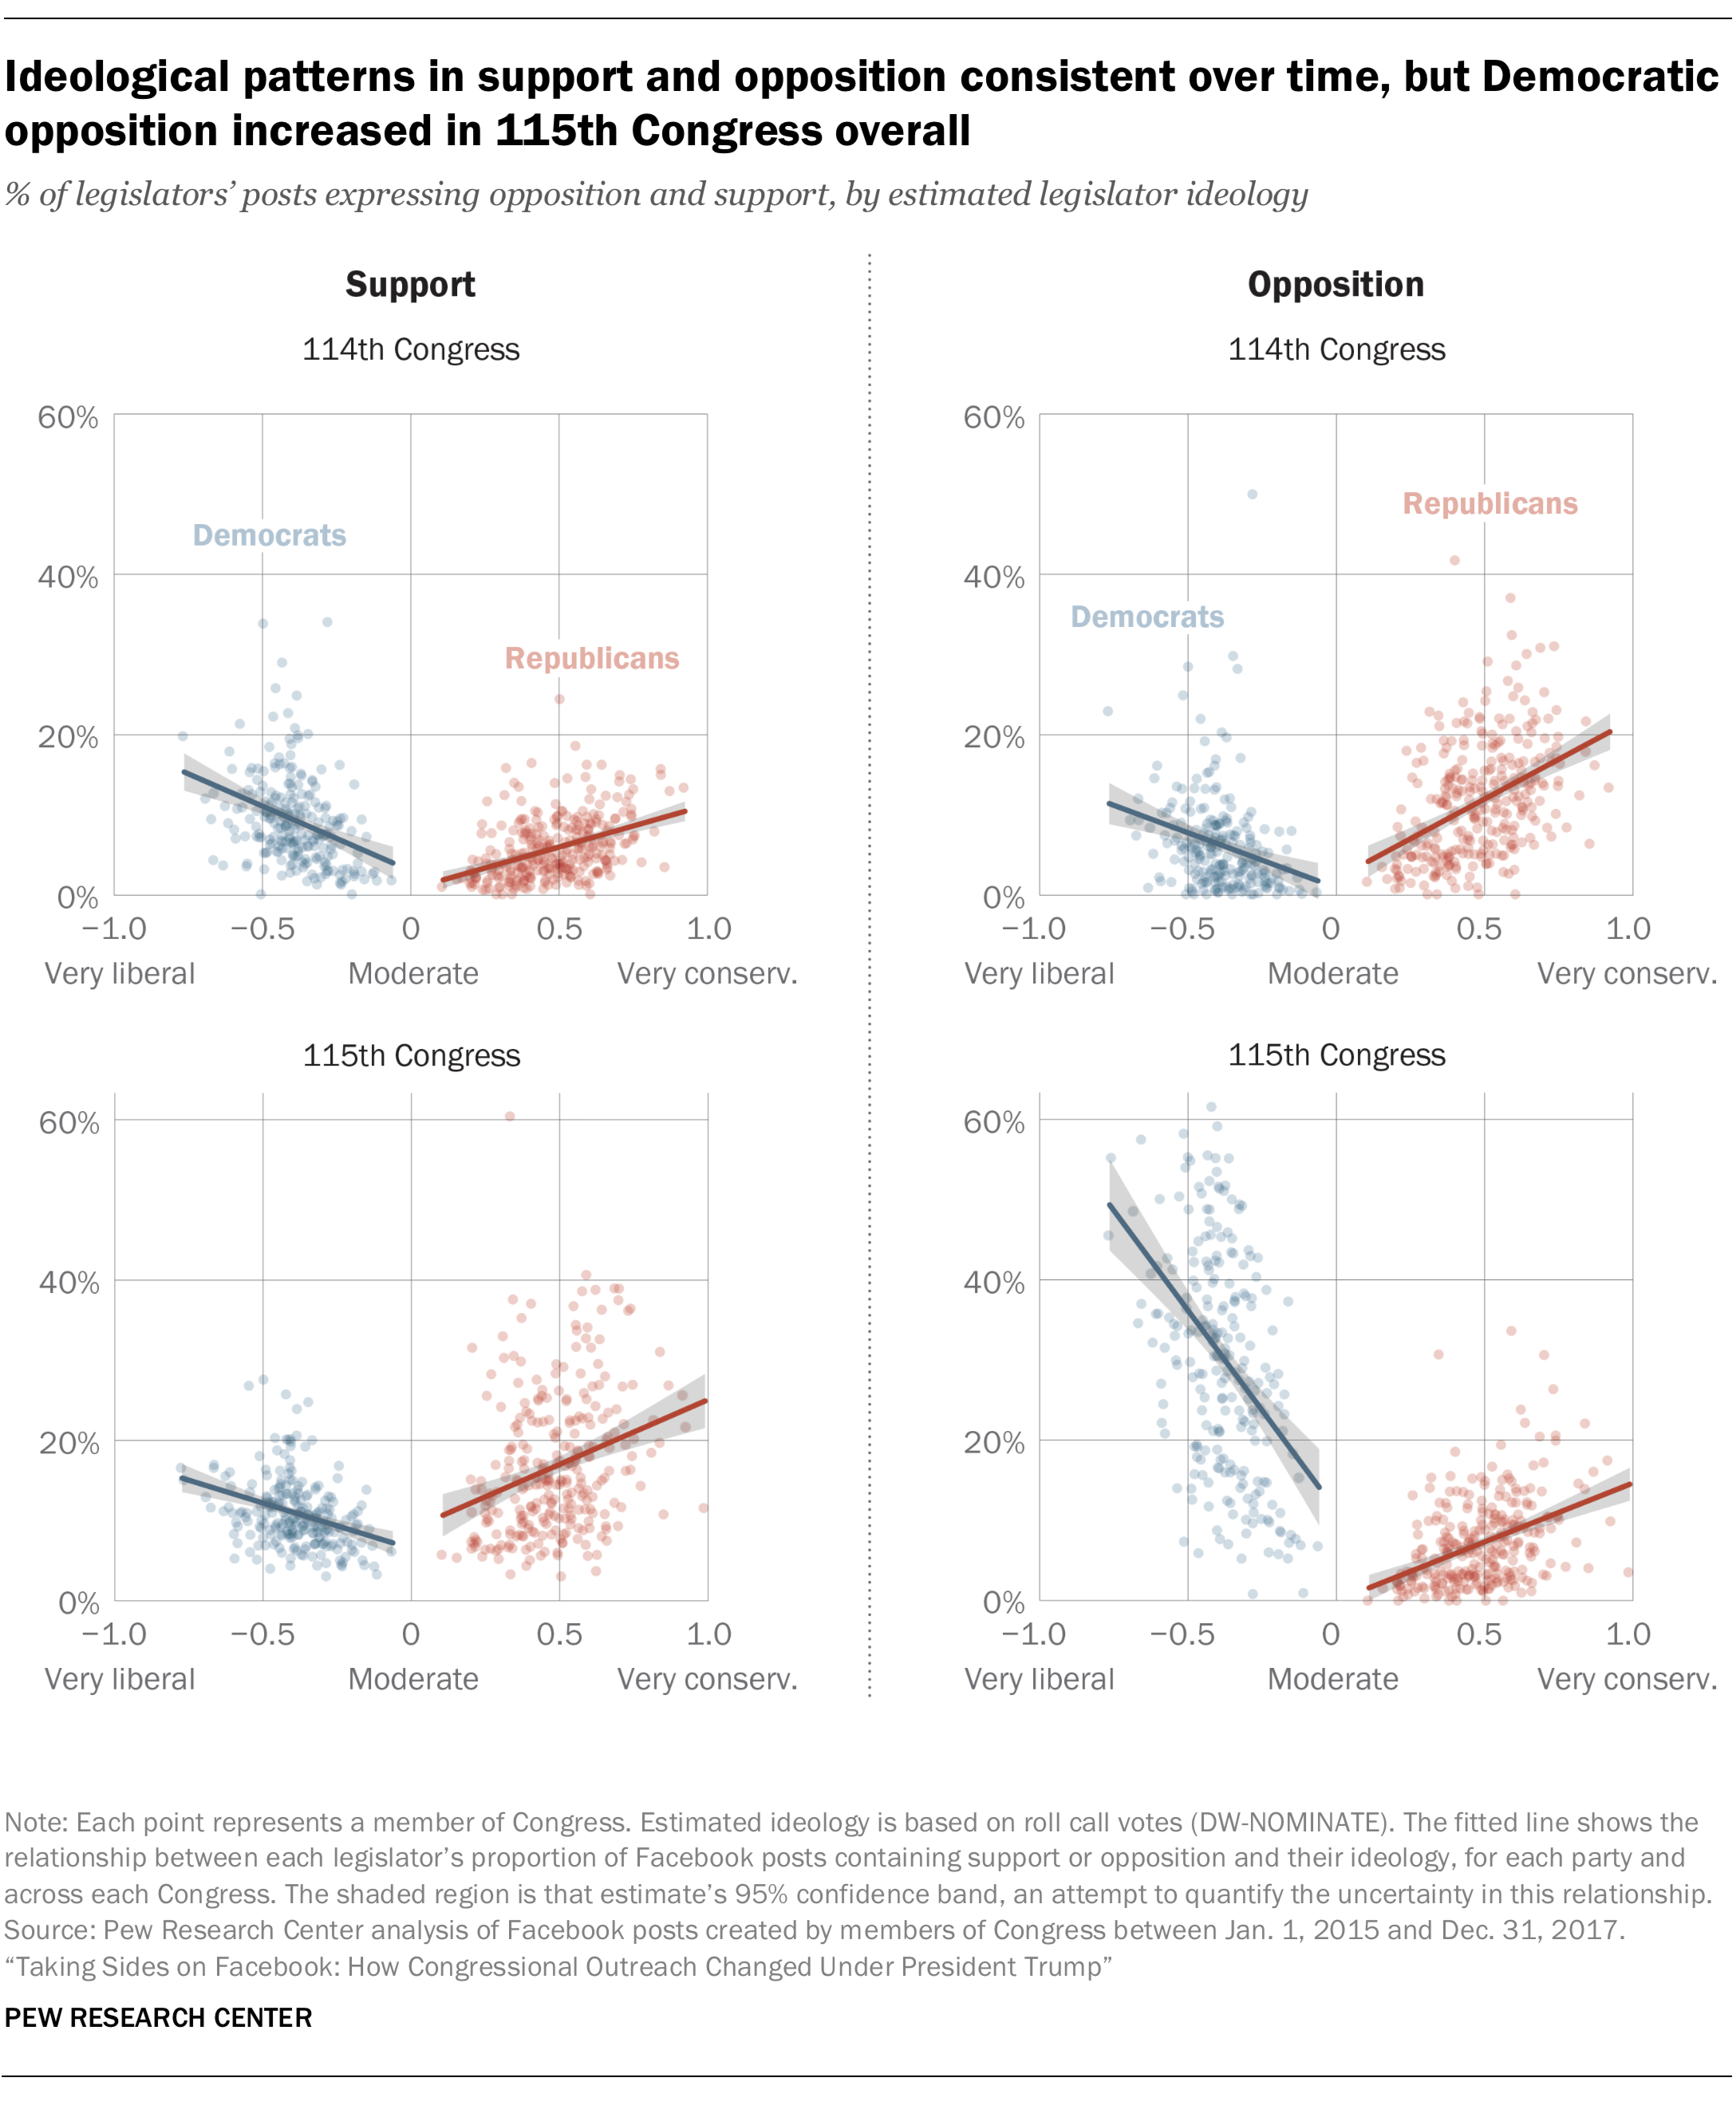 Ideological patterns in support and opposition consistent over time, but Democratic opposition increased in 115th Congress overall